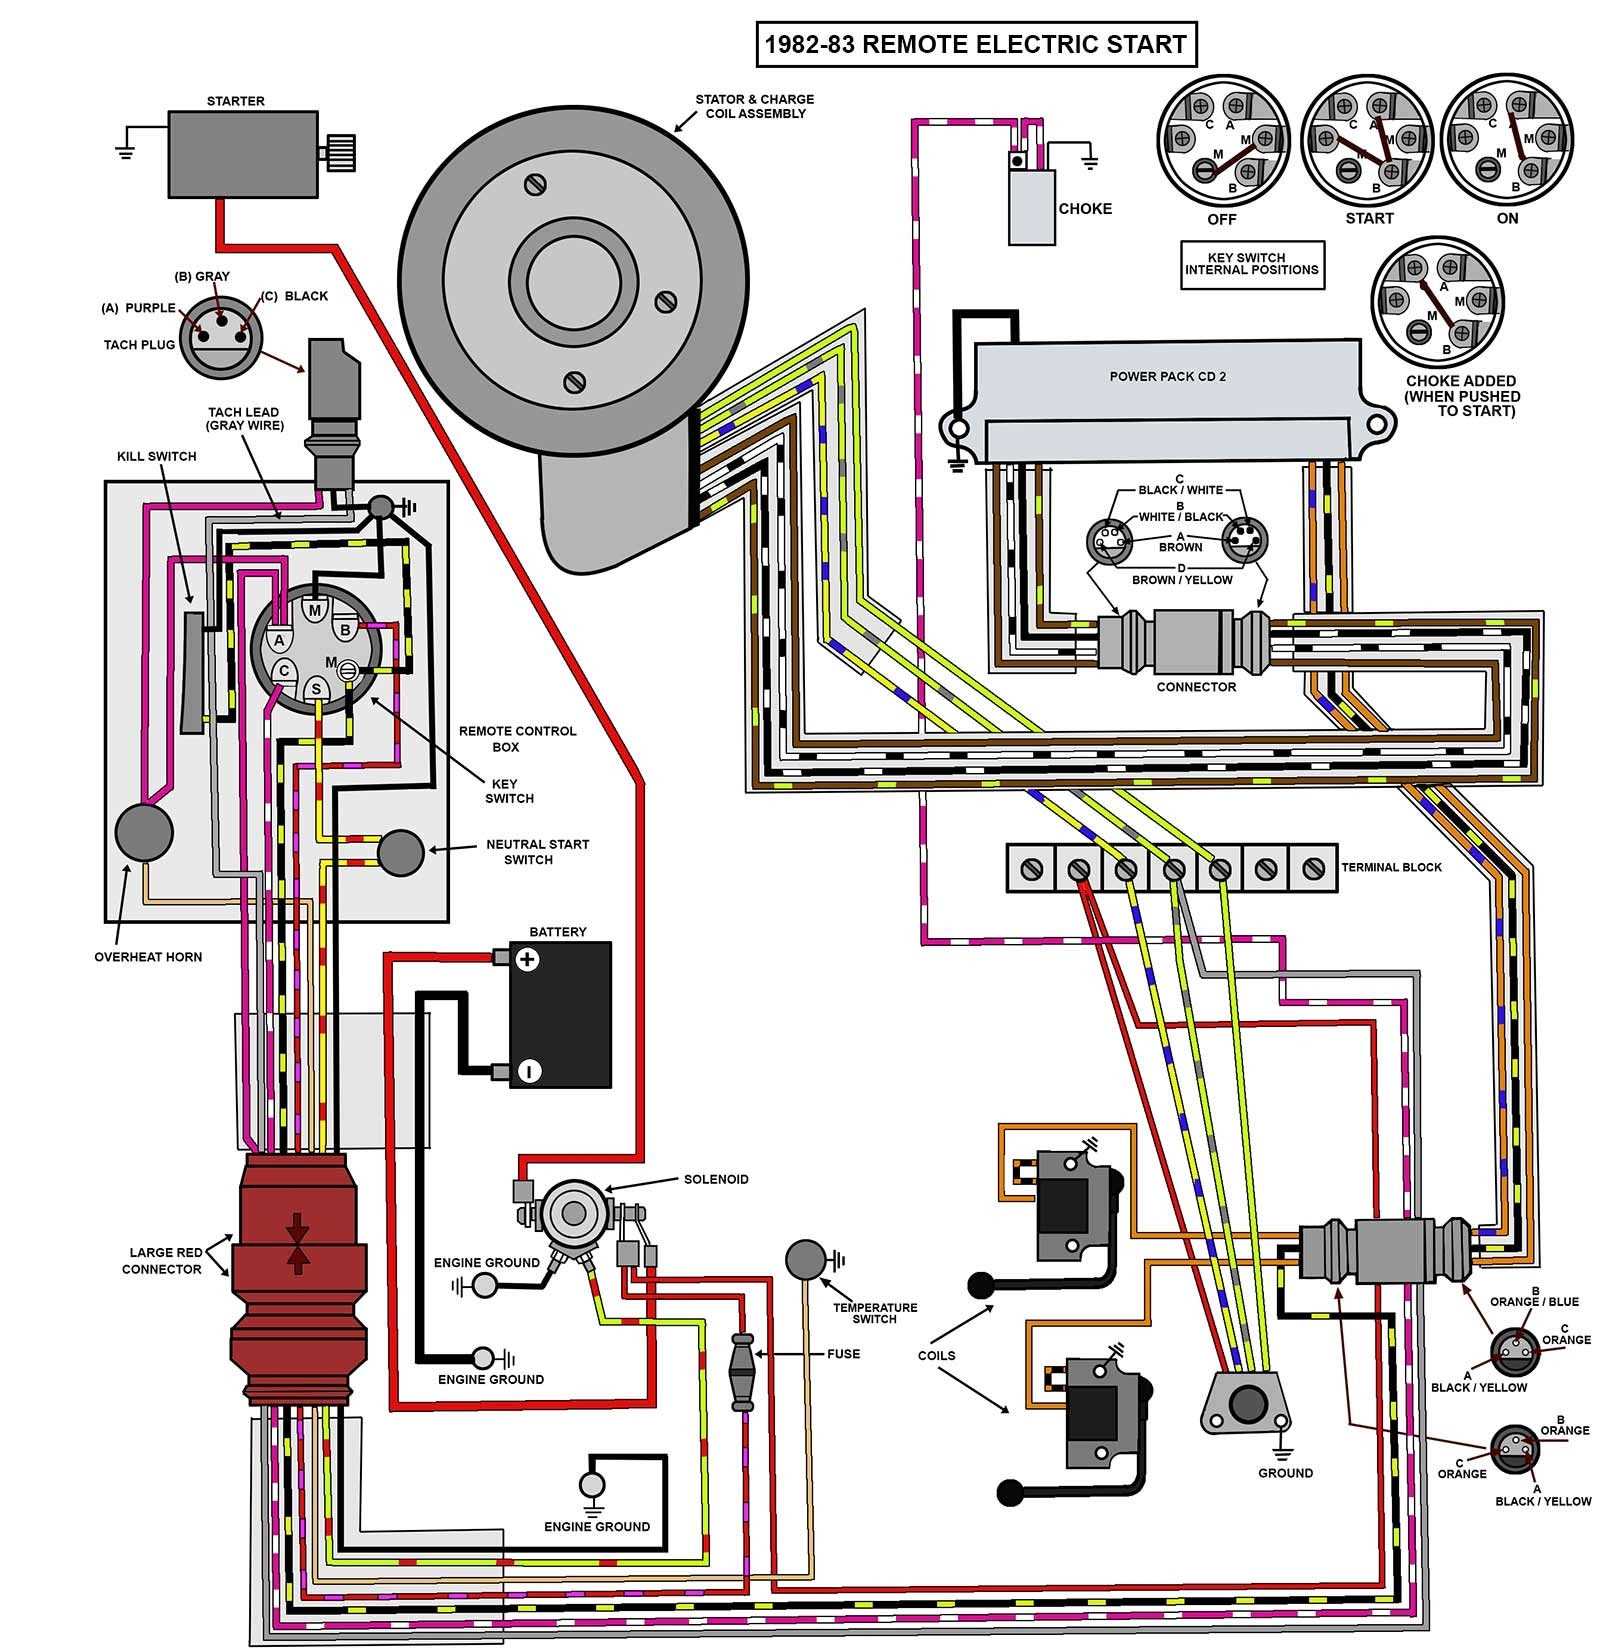 hight resolution of wiring diagram for 1991 evinrude 150 wiring diagram mega 200 hp evinrude wiring schematics